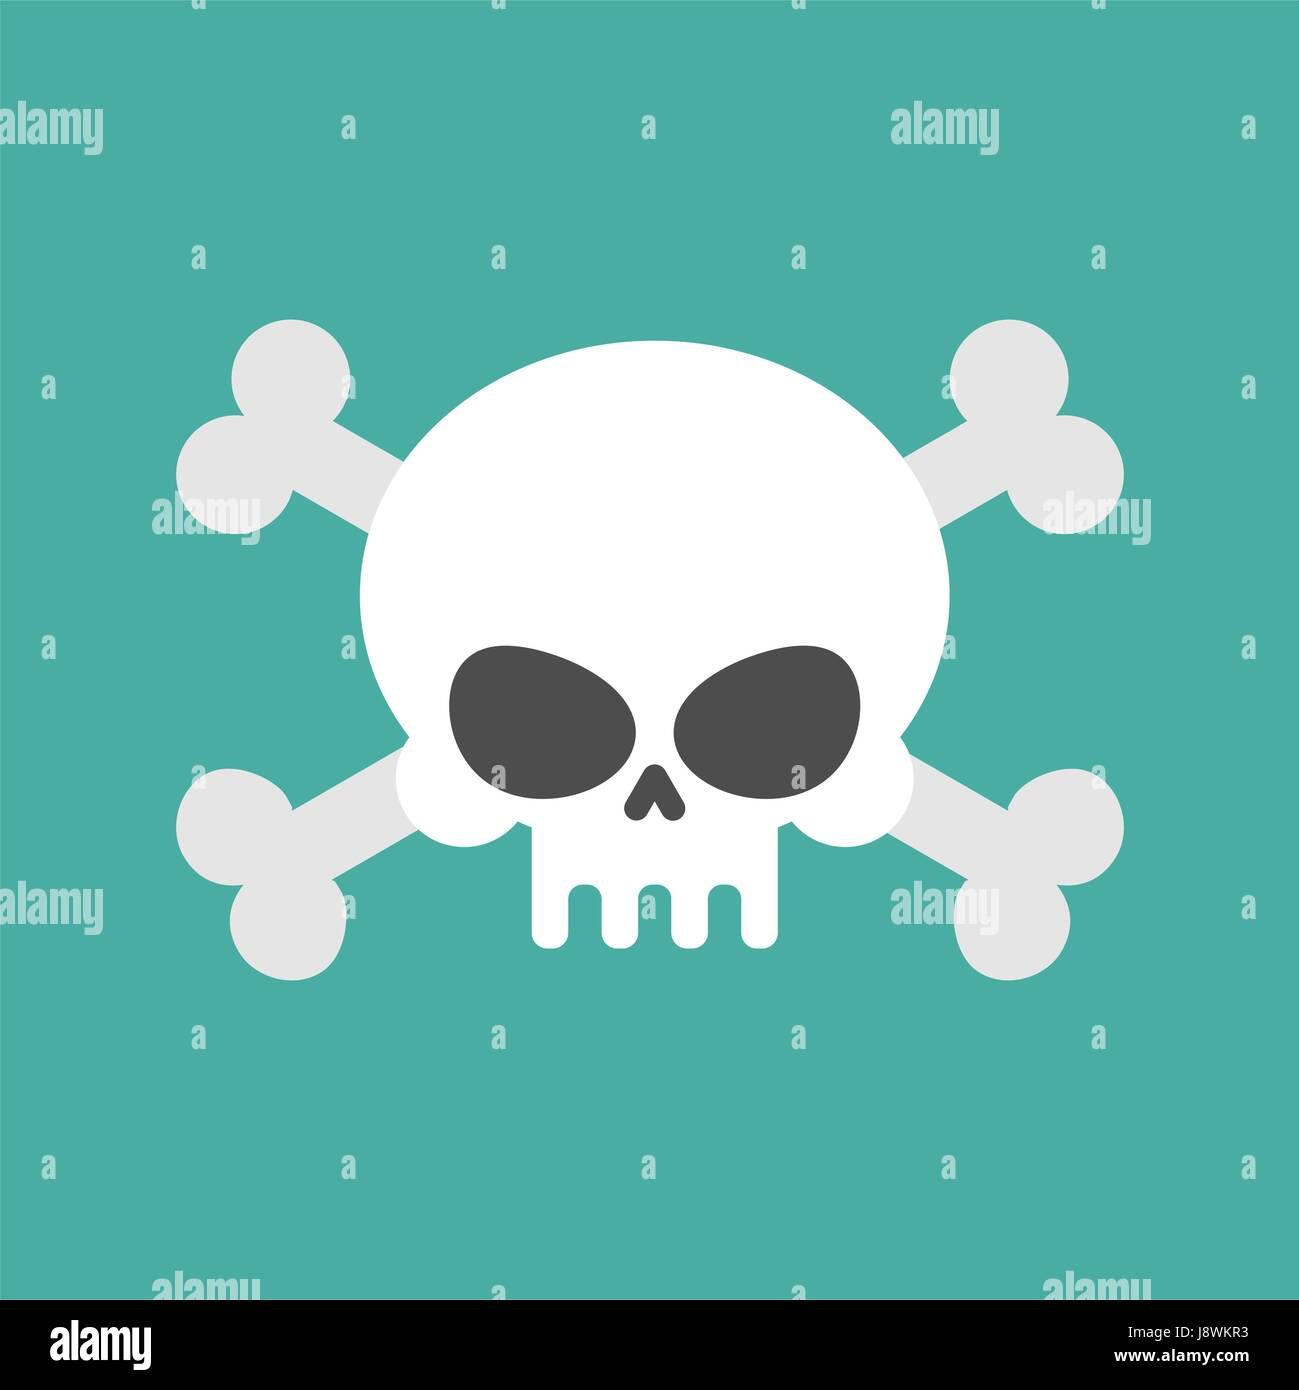 Skull and crossbones isolated pirate danger sign skeleton head skull and crossbones isolated pirate danger sign skeleton head symbol of death buycottarizona Images